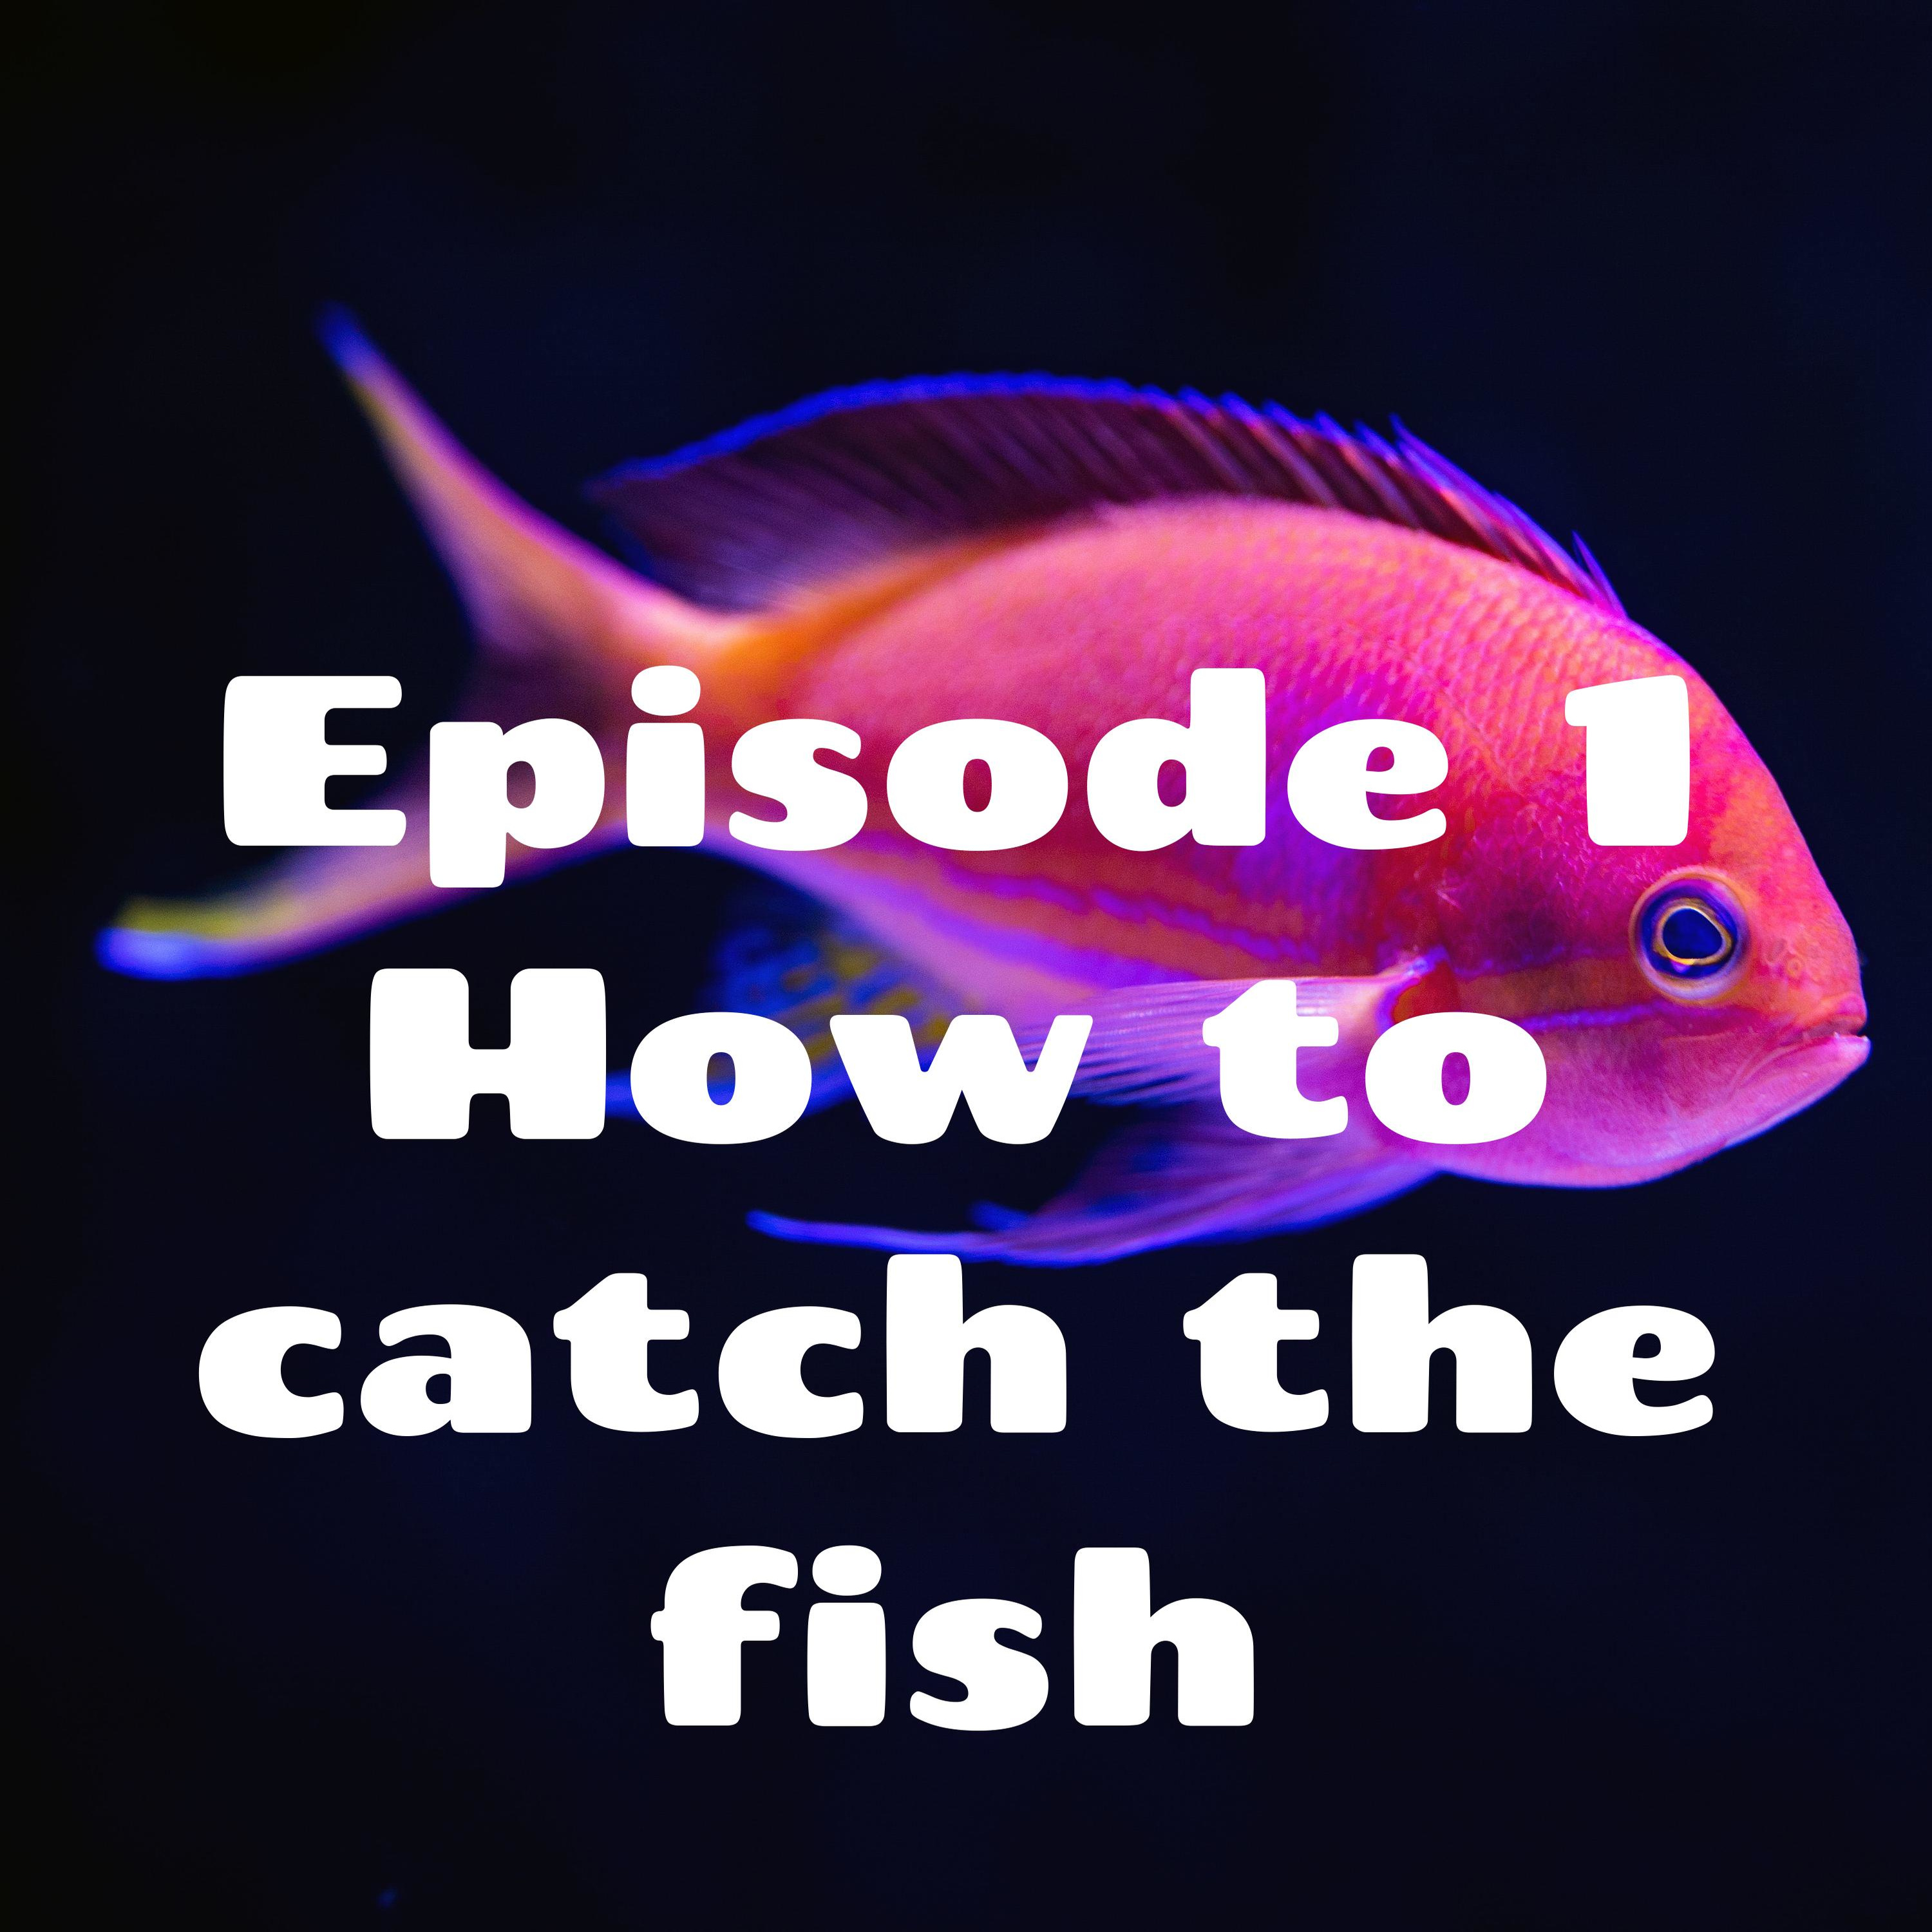 eFishode 1 how to catch the fish